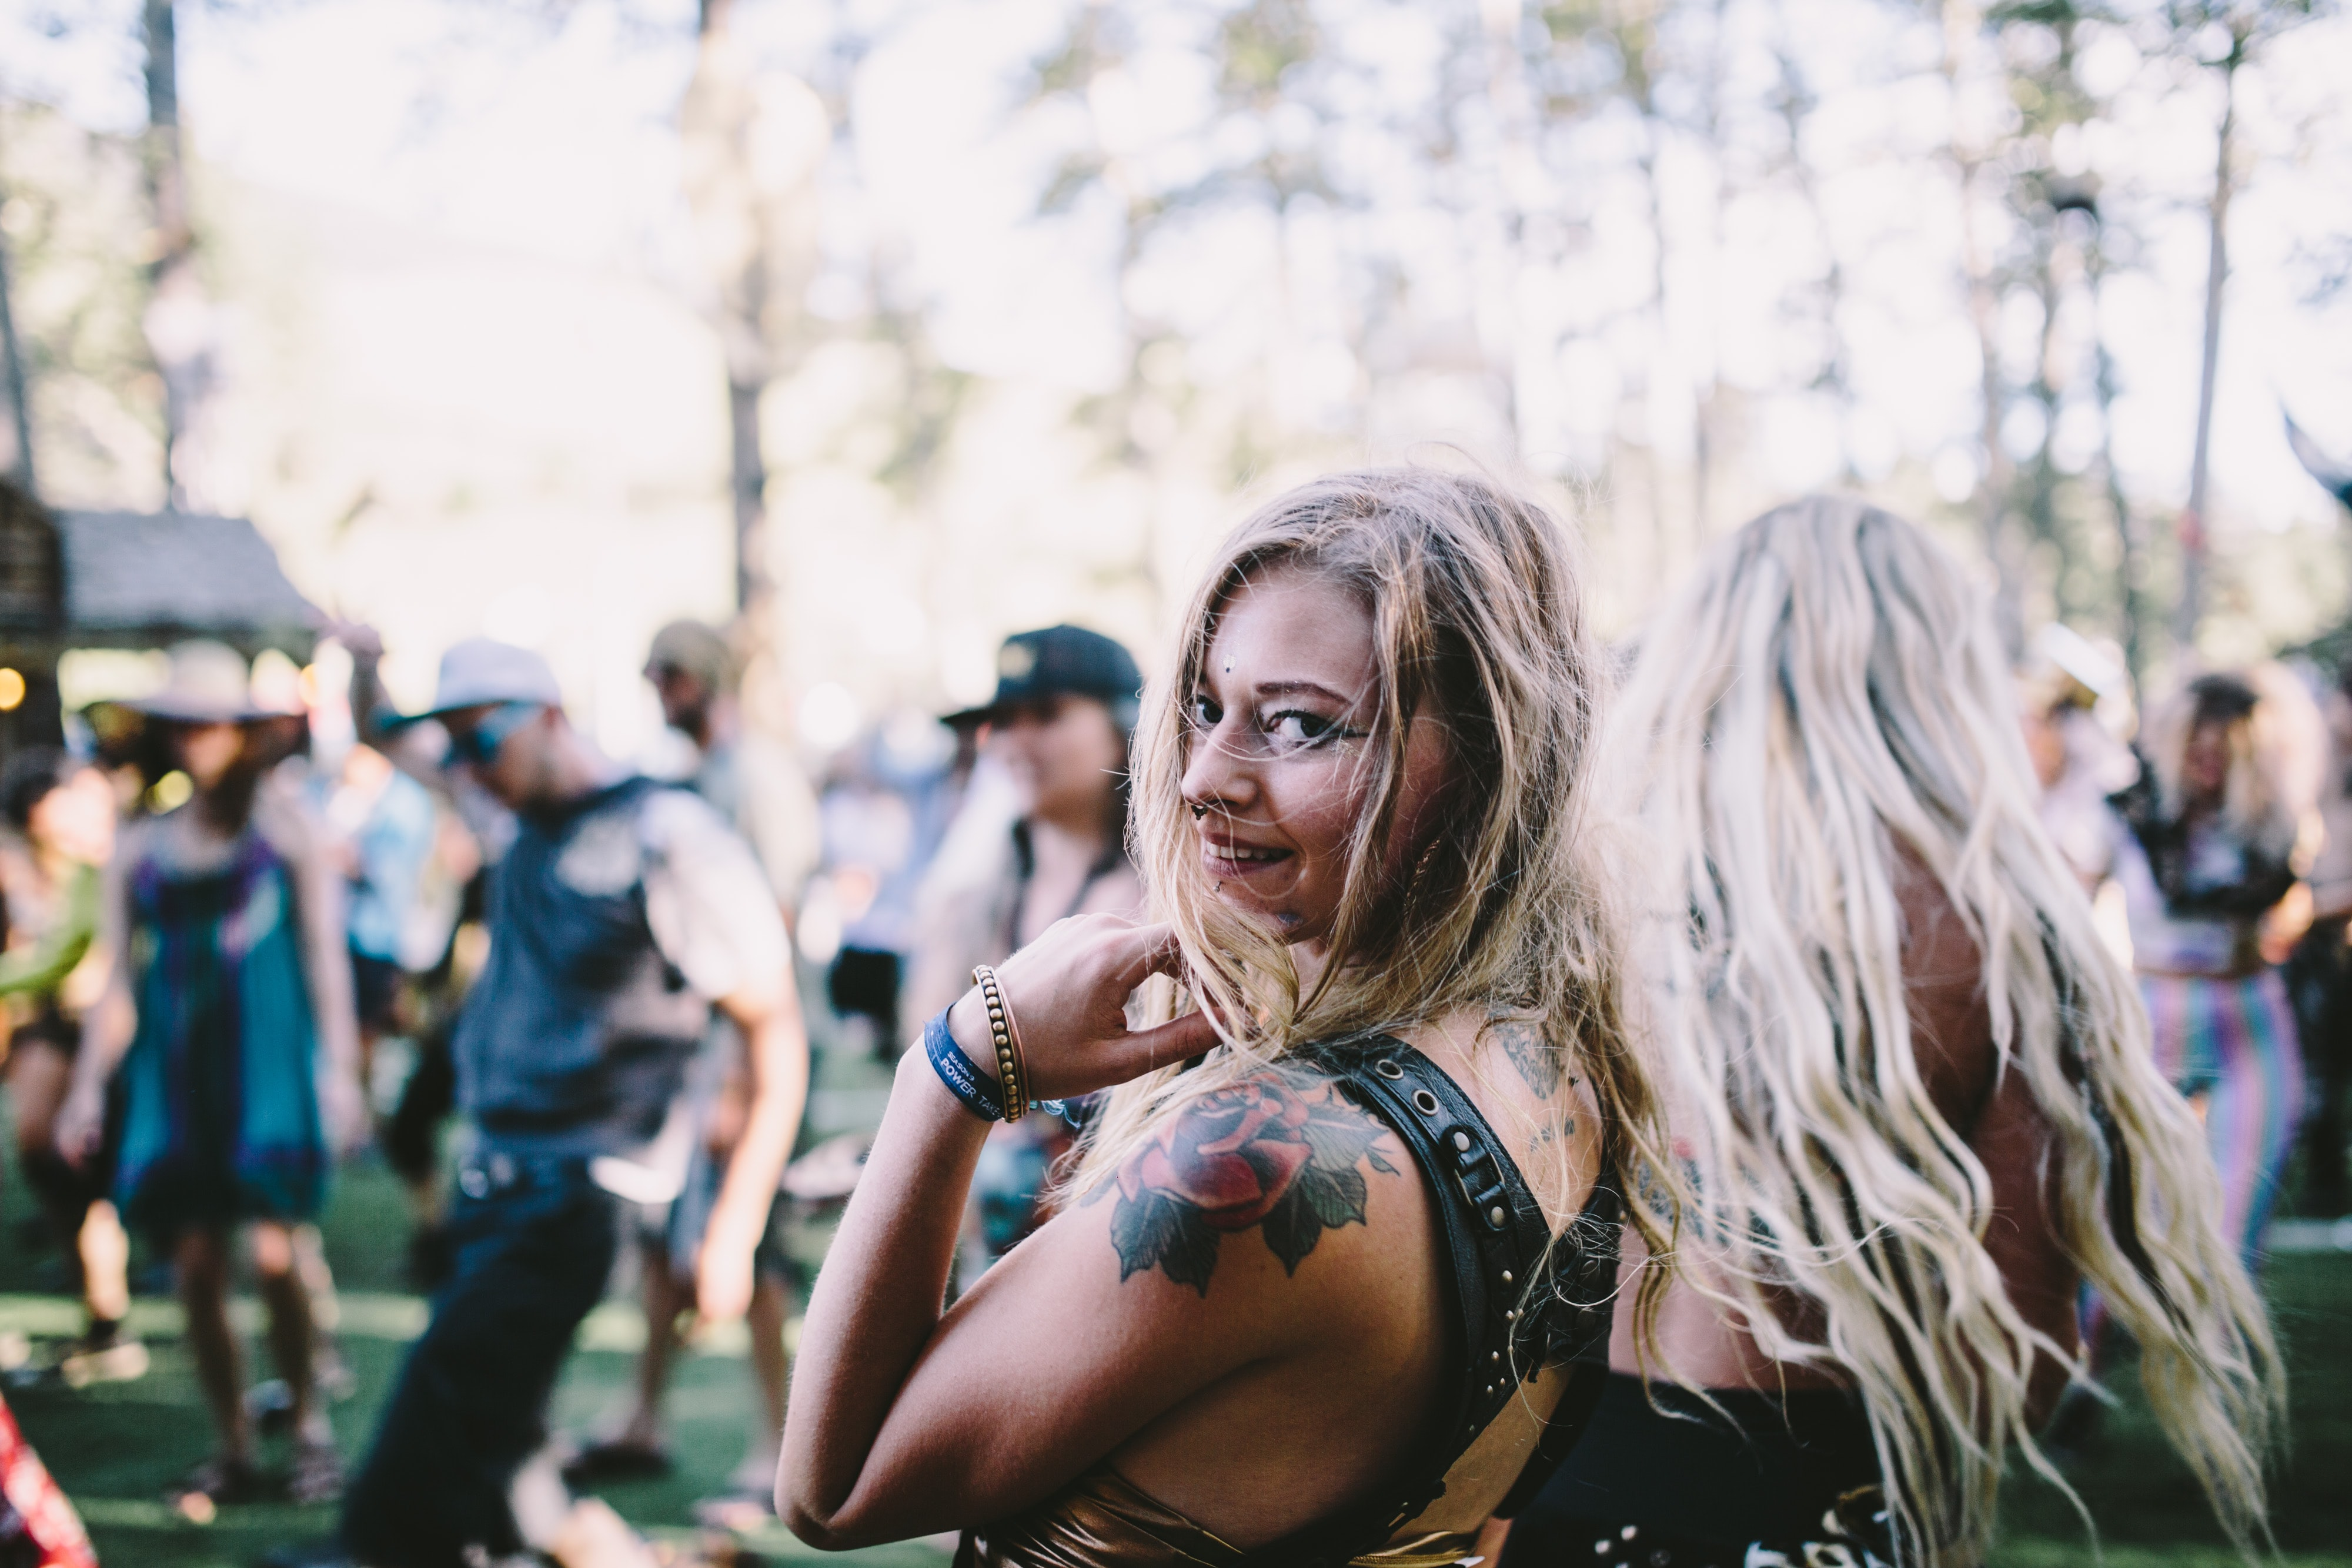 A blond woman with a rose tattoo on her arm looking back at the camera at an outdoor party